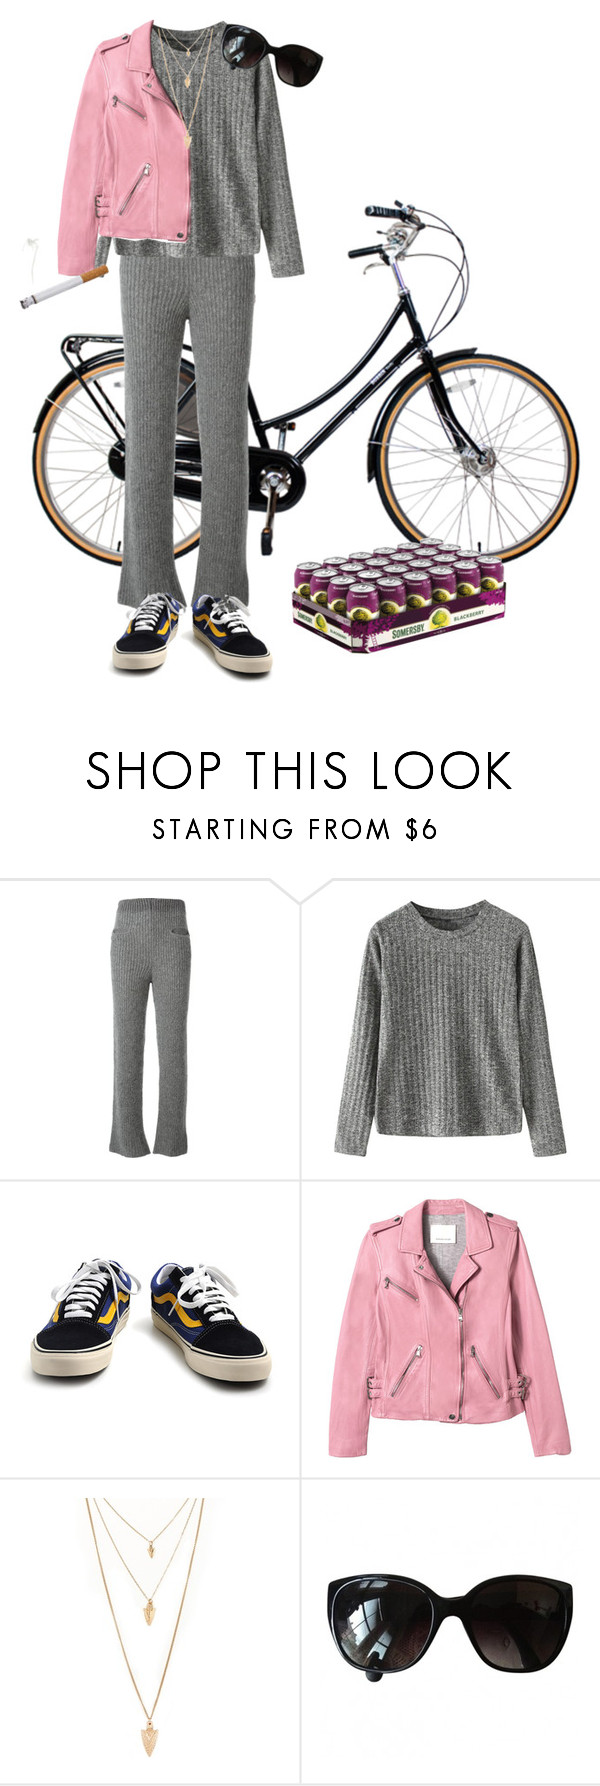 """""""Untitled #202"""" by frederikkematilder on Polyvore featuring Haider Ackermann, Vans, Rebecca Taylor, Forever 21 and Chanel"""